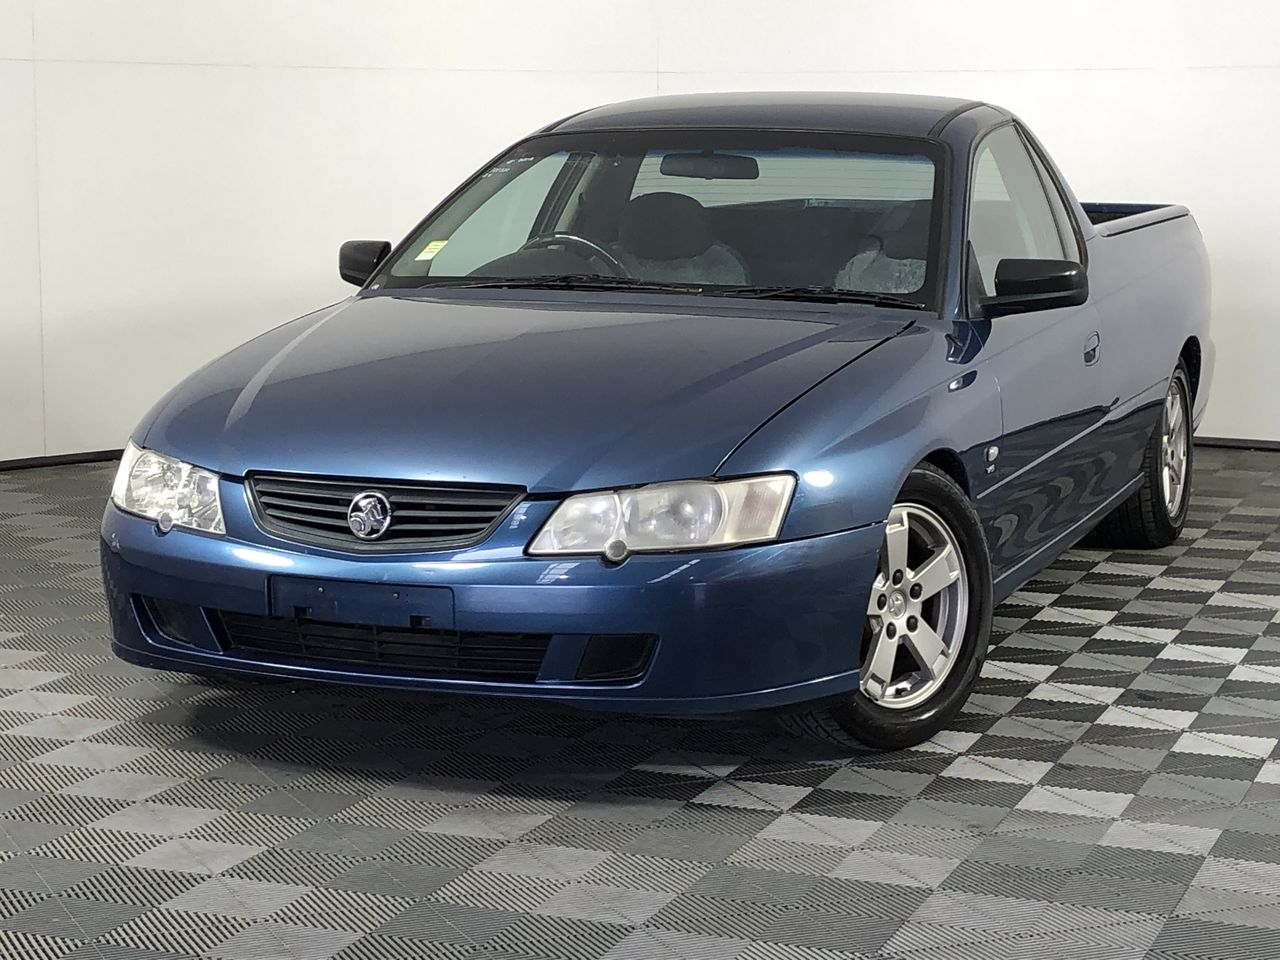 2003 Holden Commodore S Y Series Manual Ute